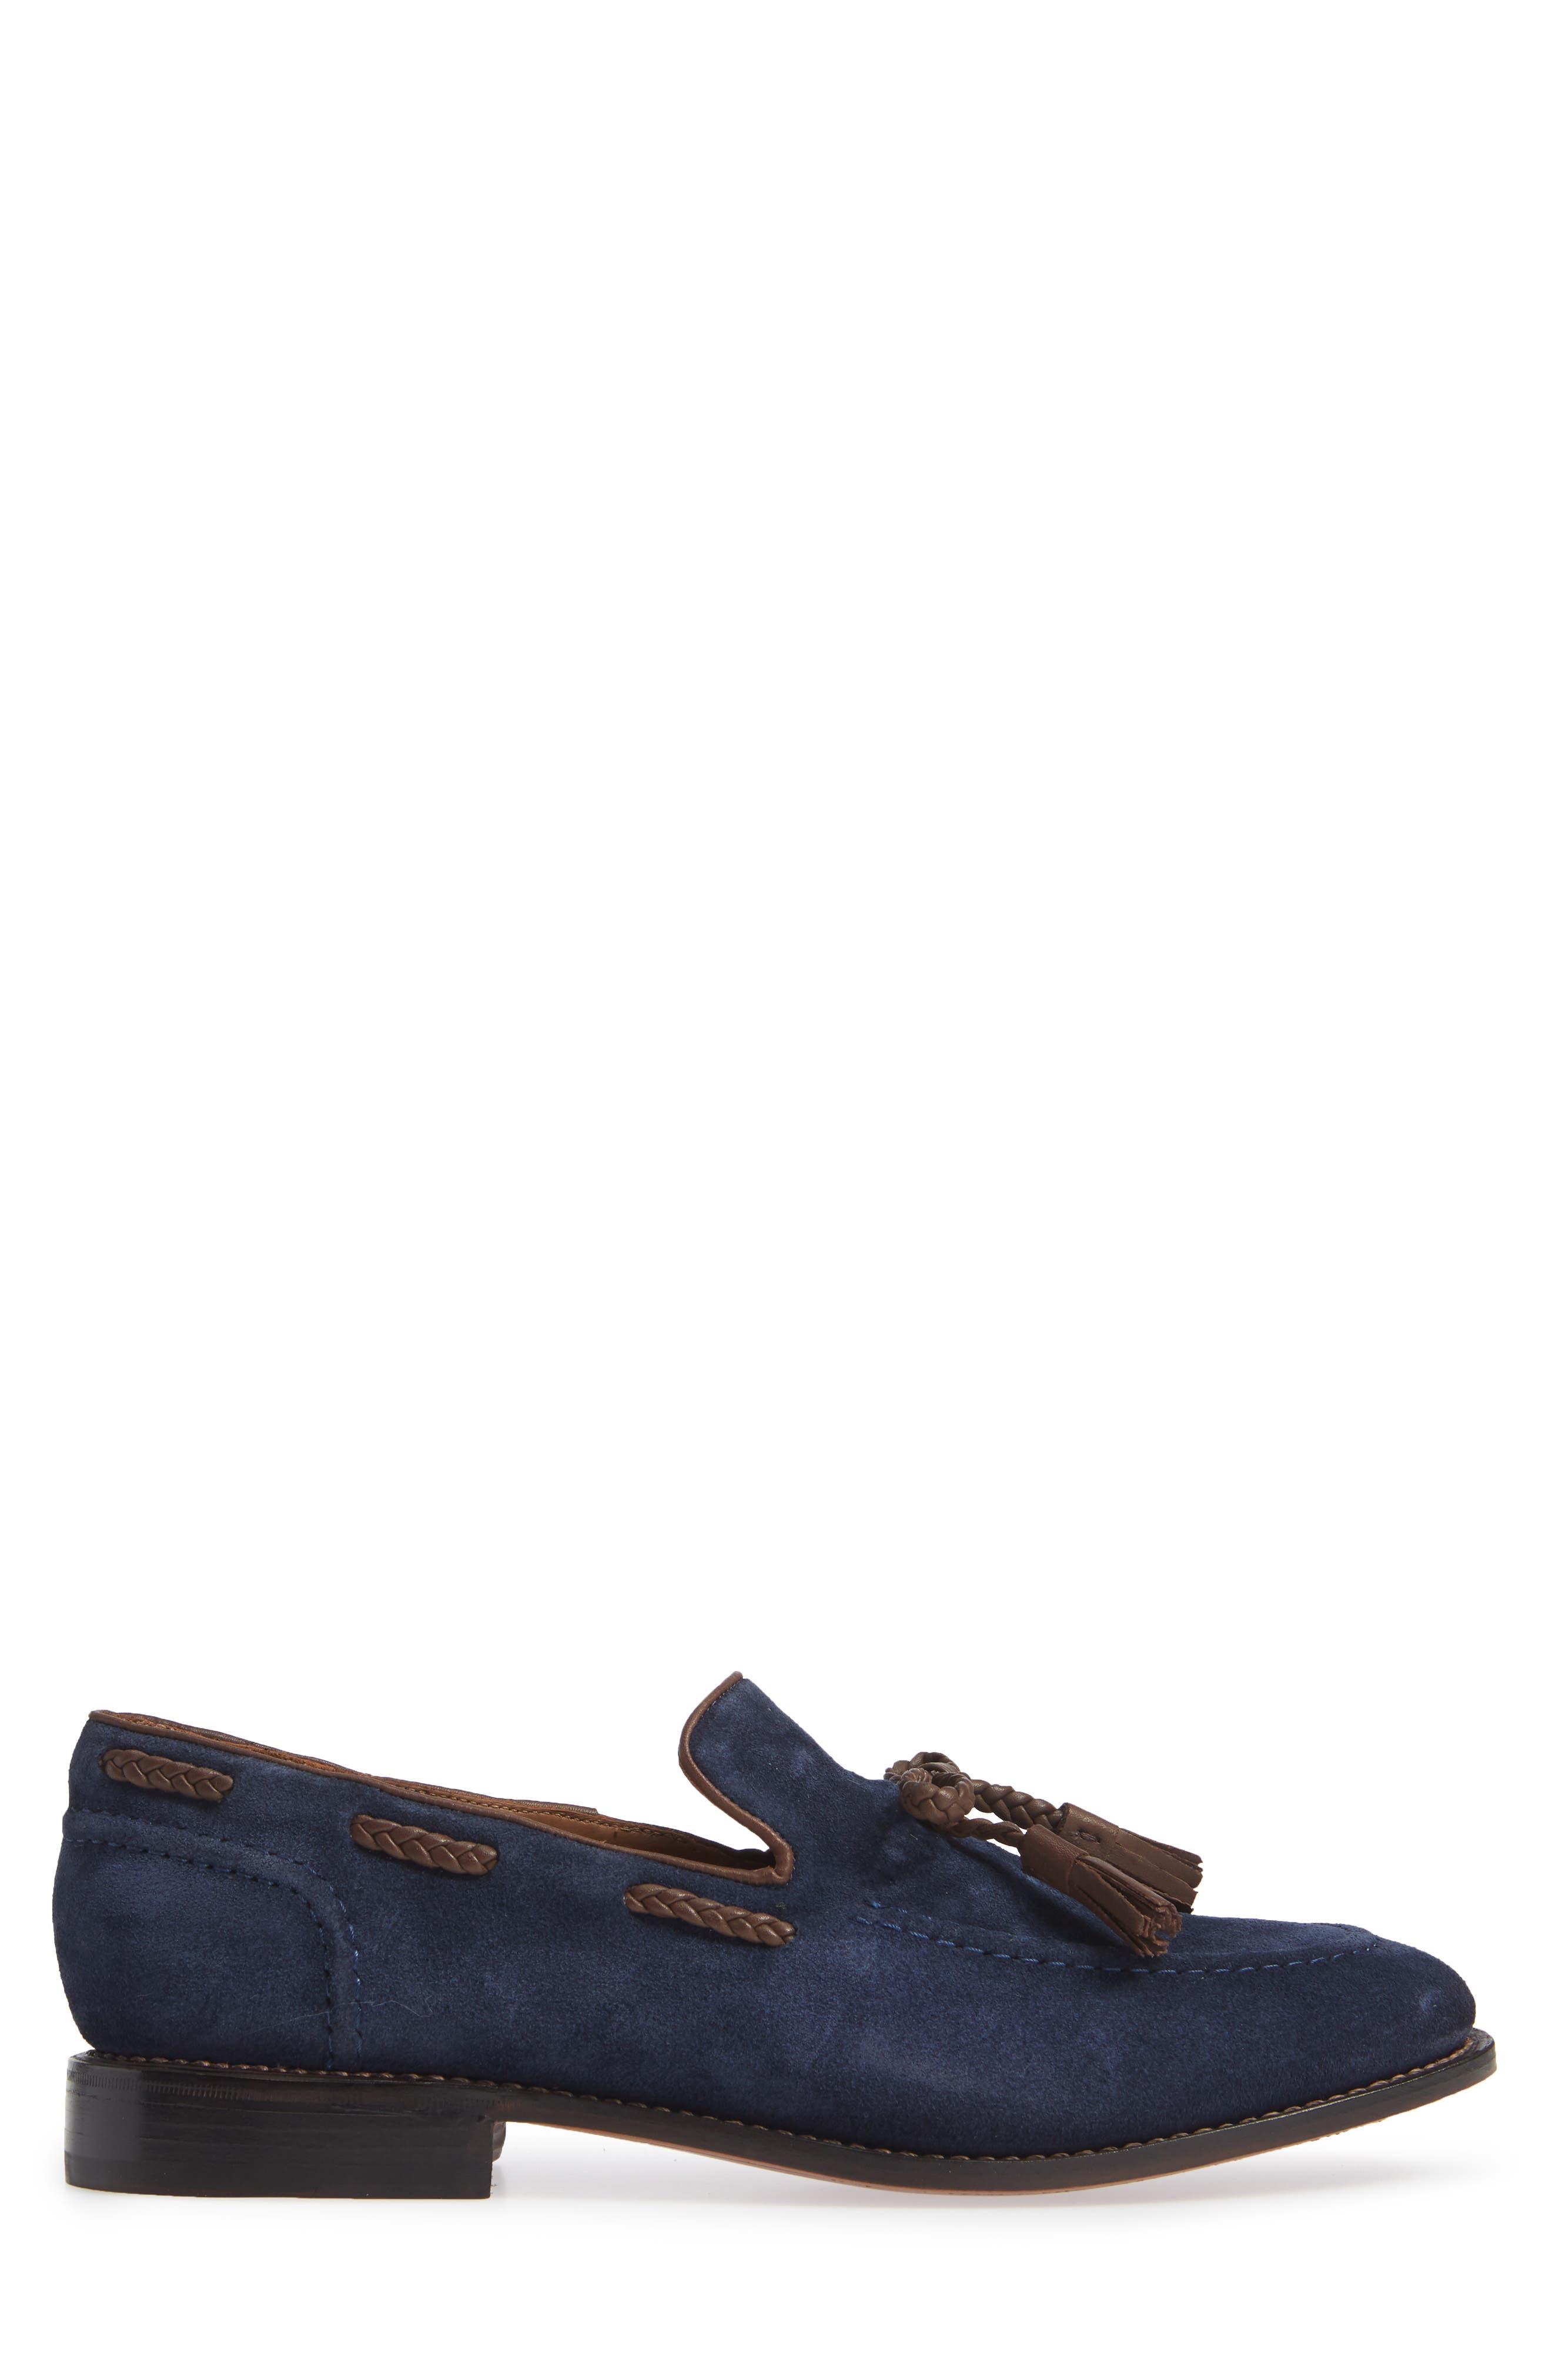 Braided Tassel Loafer,                             Alternate thumbnail 3, color,                             NAVY SUEDE